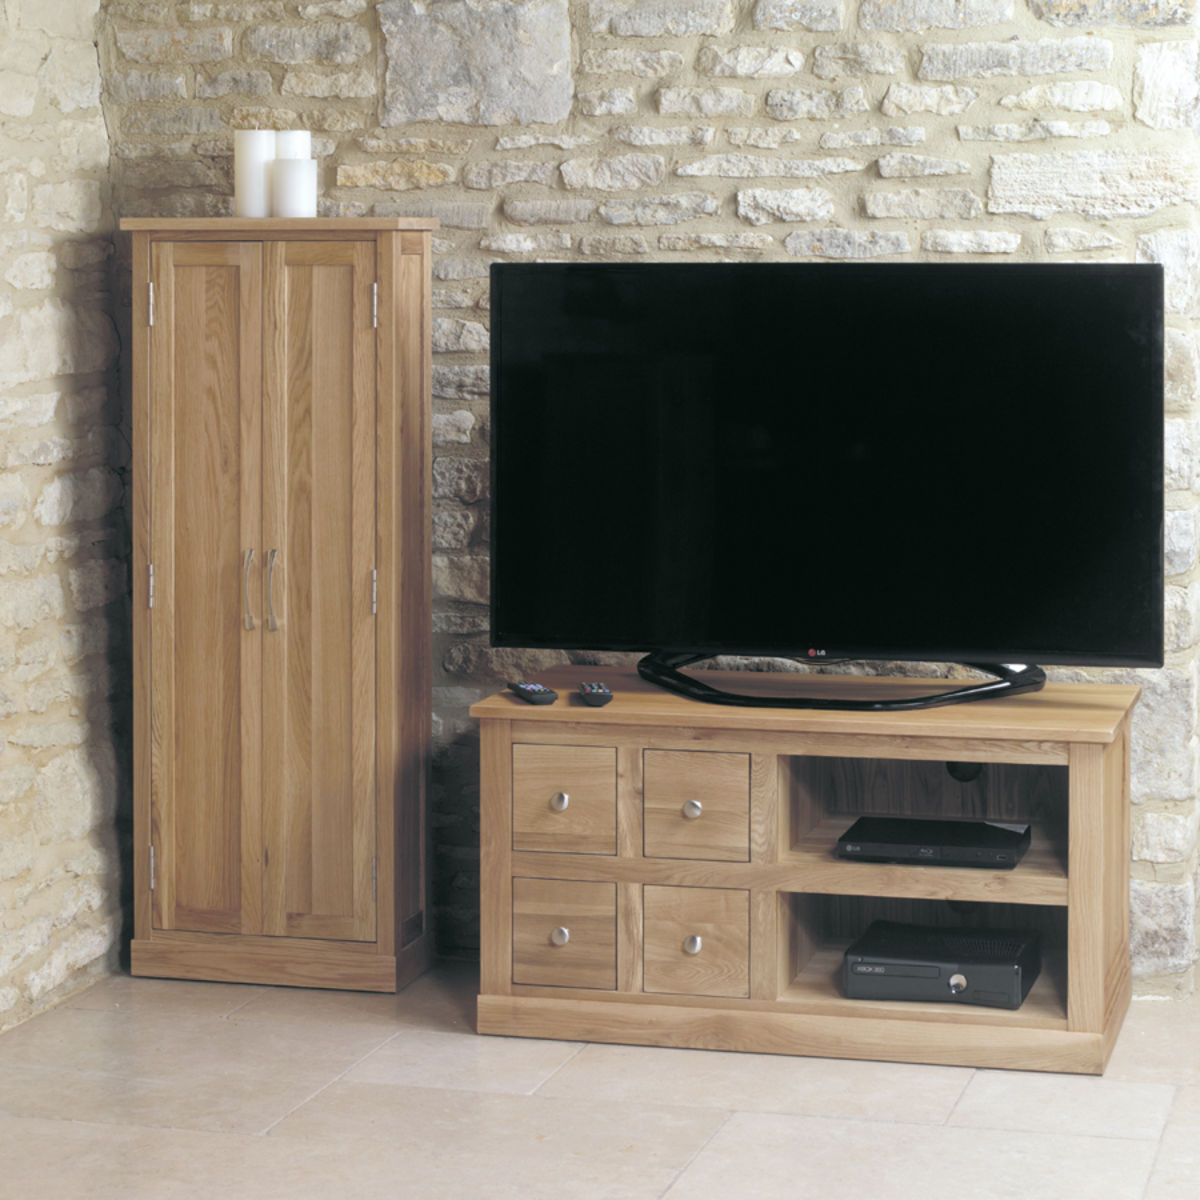 5 tips to hel[p you choose the perfect tv cabinet